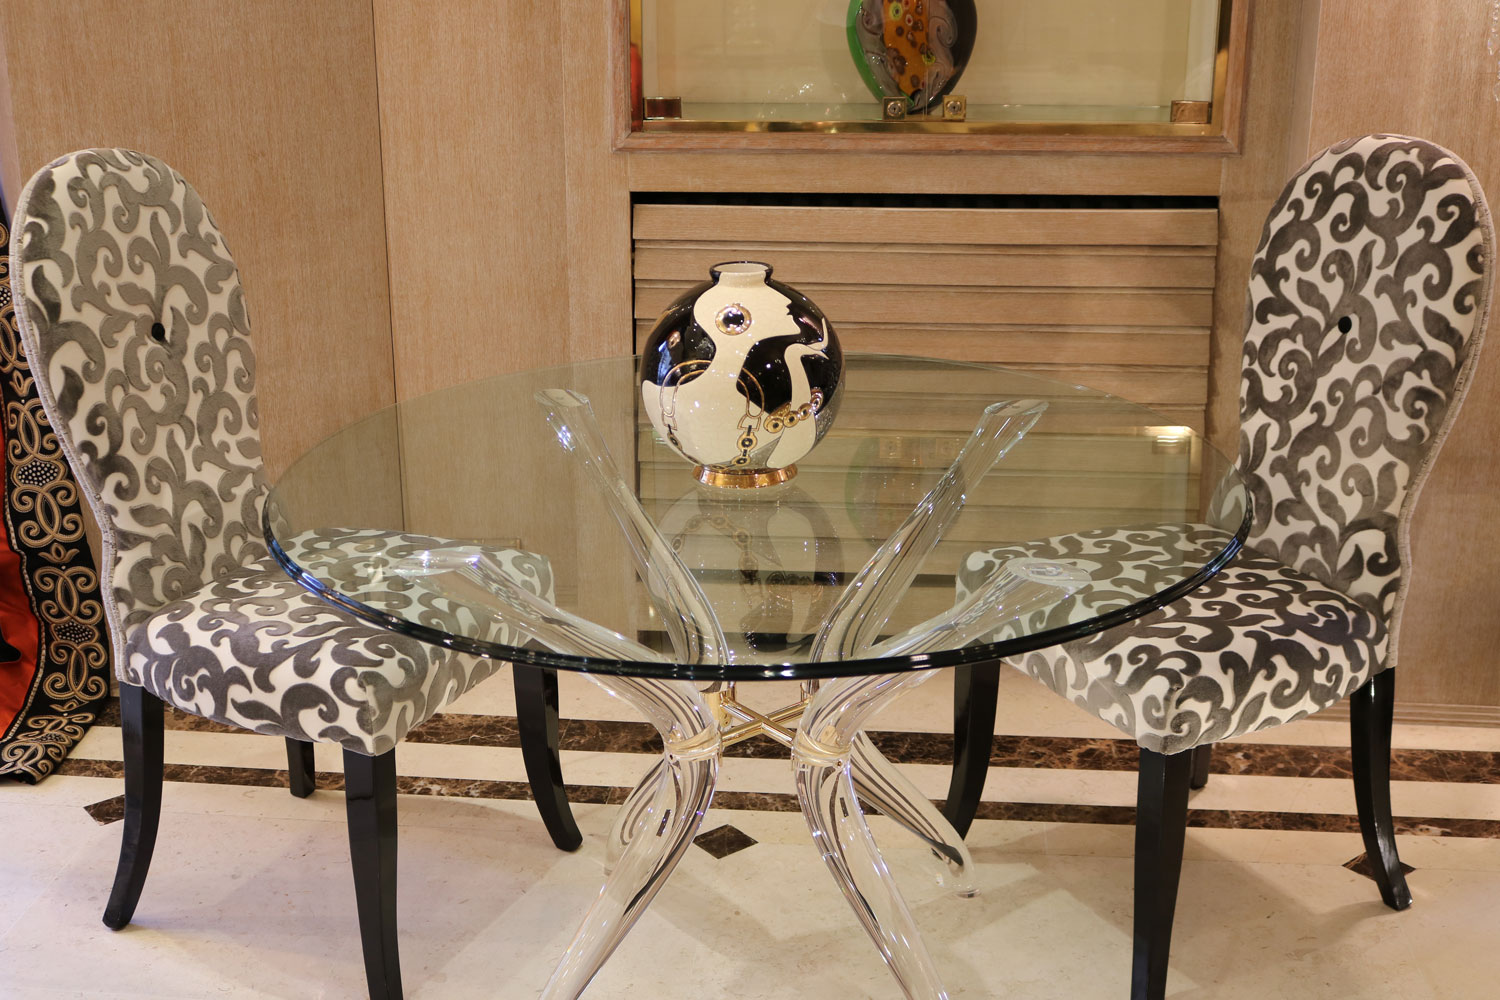 Mobilier de luxe Paris -Table transparente MADELIA PARIS